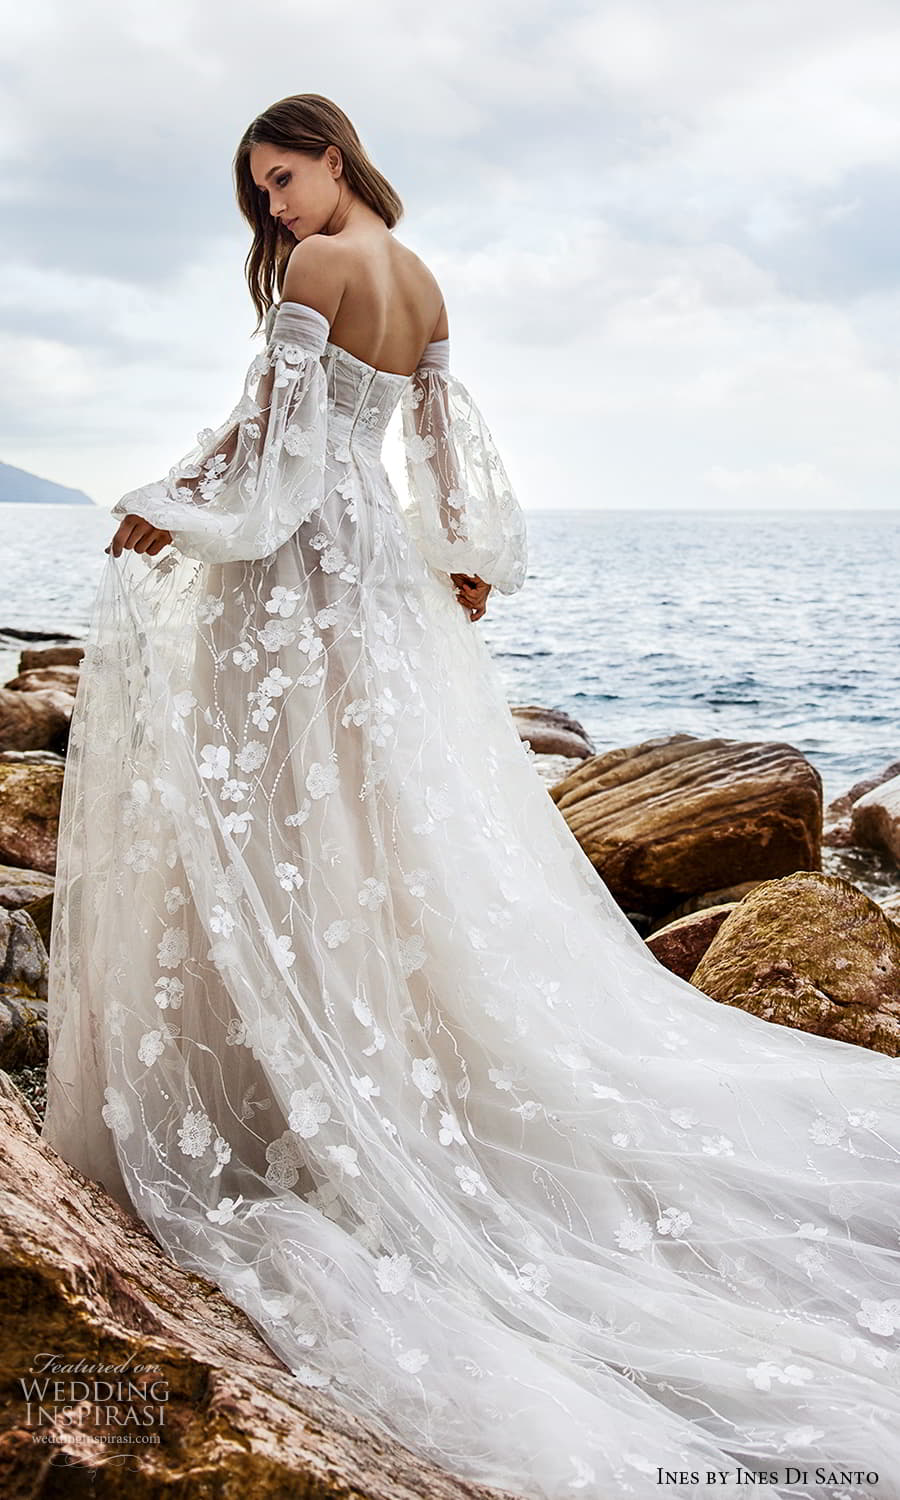 ines ines di santo spring 2022 bridal detached bishop sleeves strapless sweetheart neckline fully embellished a line ball gown wedding dress chapel train (1) bv